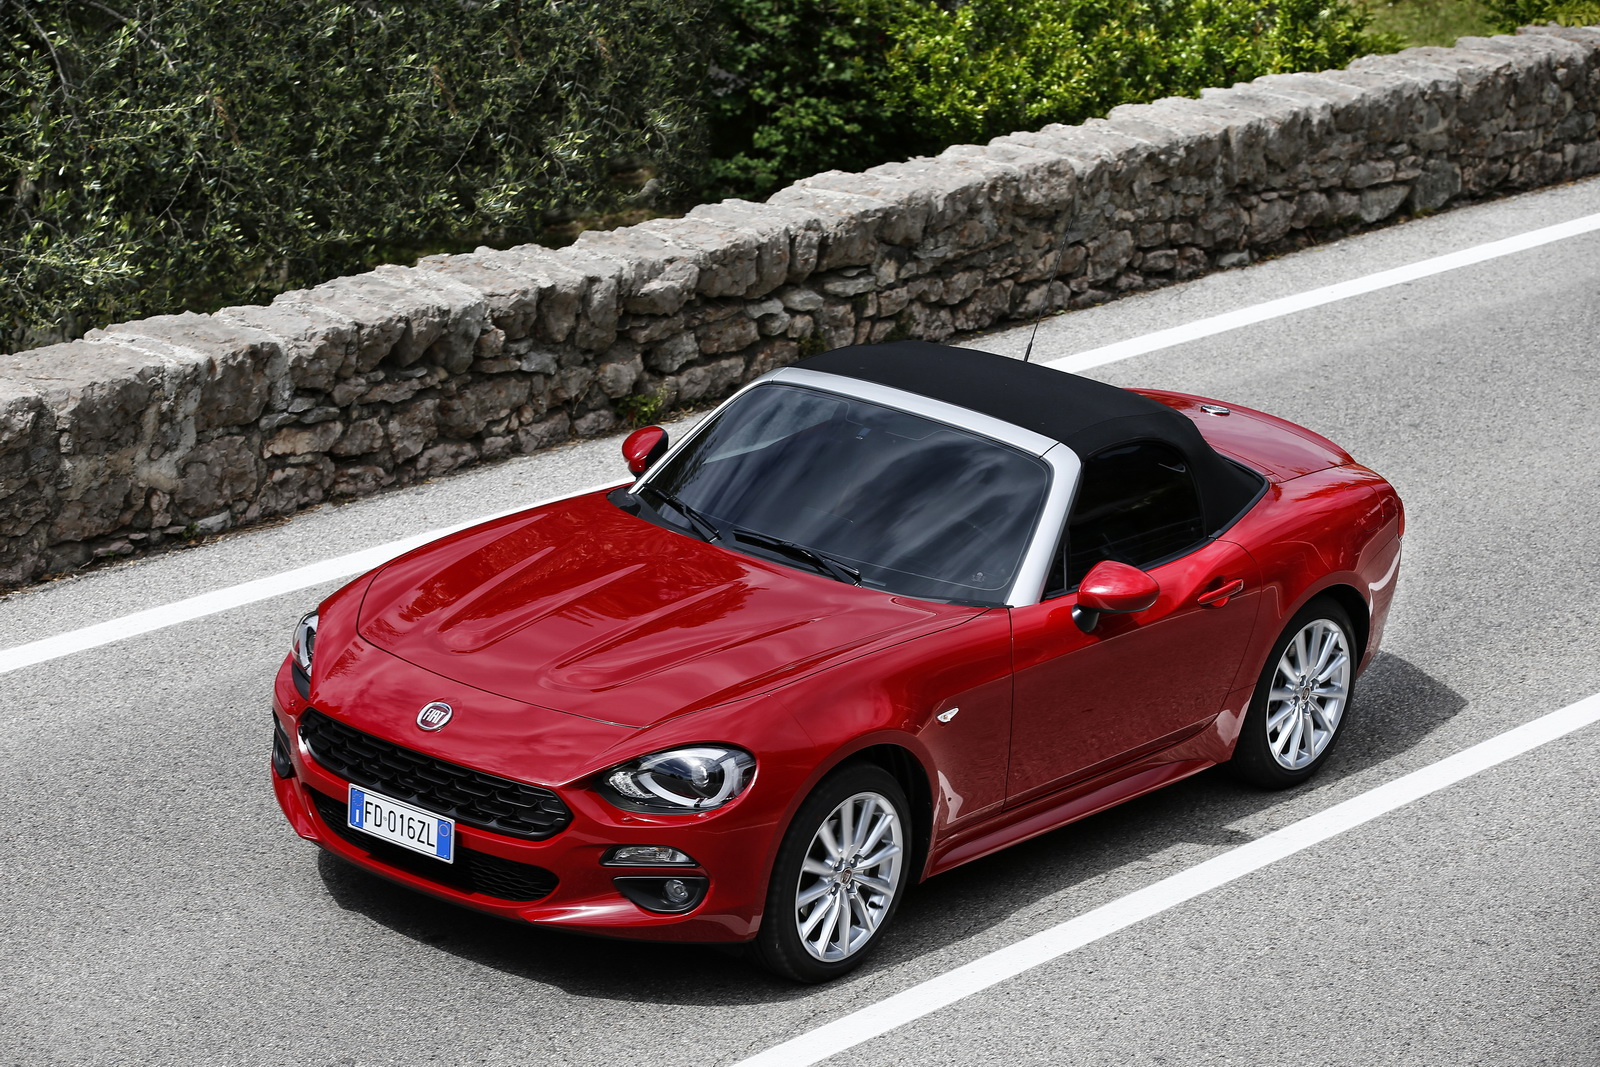 new fiat 124 spider priced from 19 545 in the uk. Black Bedroom Furniture Sets. Home Design Ideas